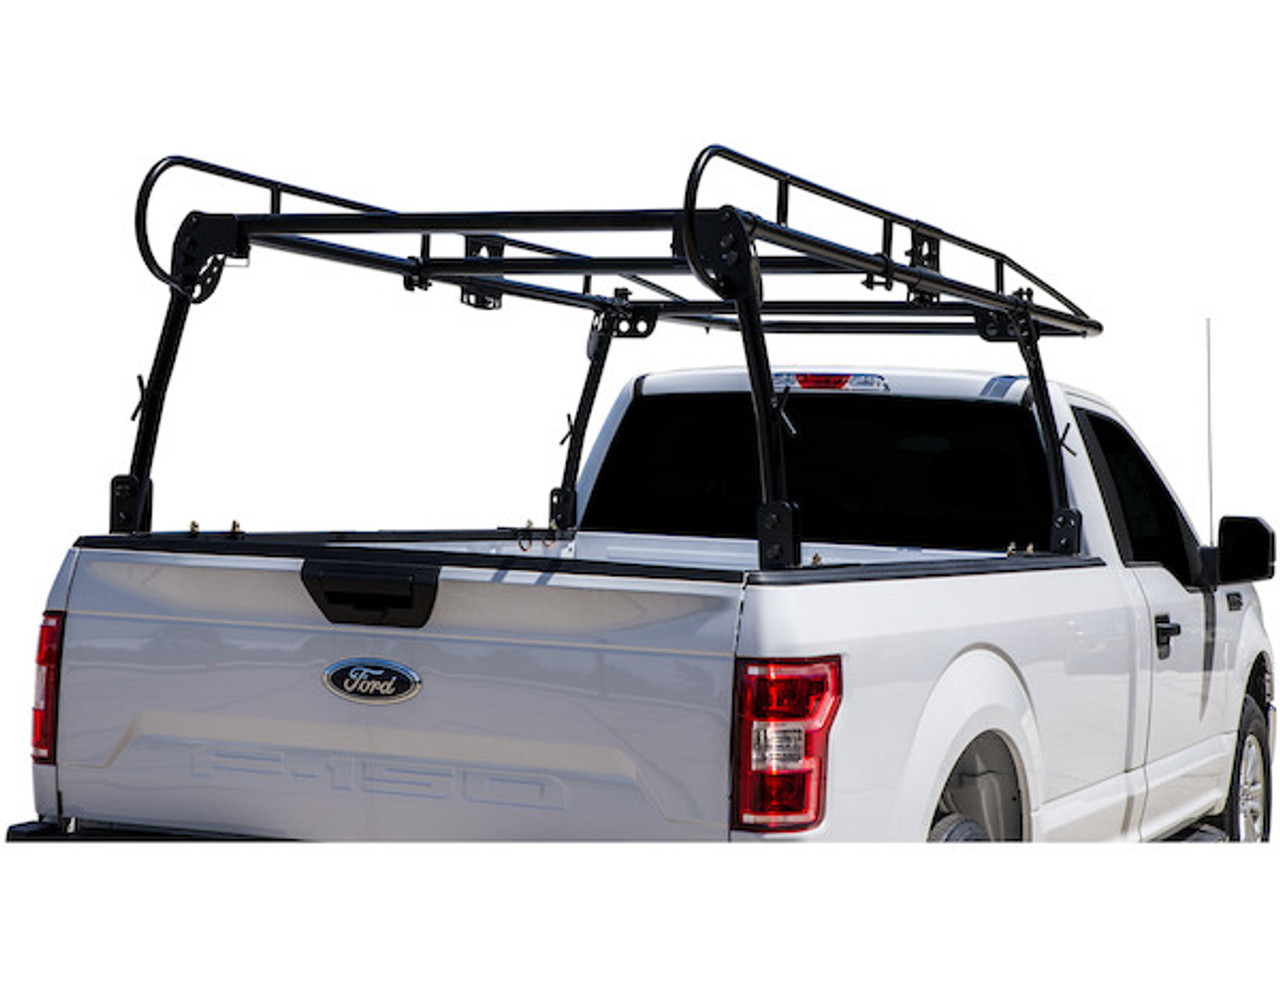 1501150 BUYERS BLACK STEEL TRUCK LADDER RACK PICTURE # 3